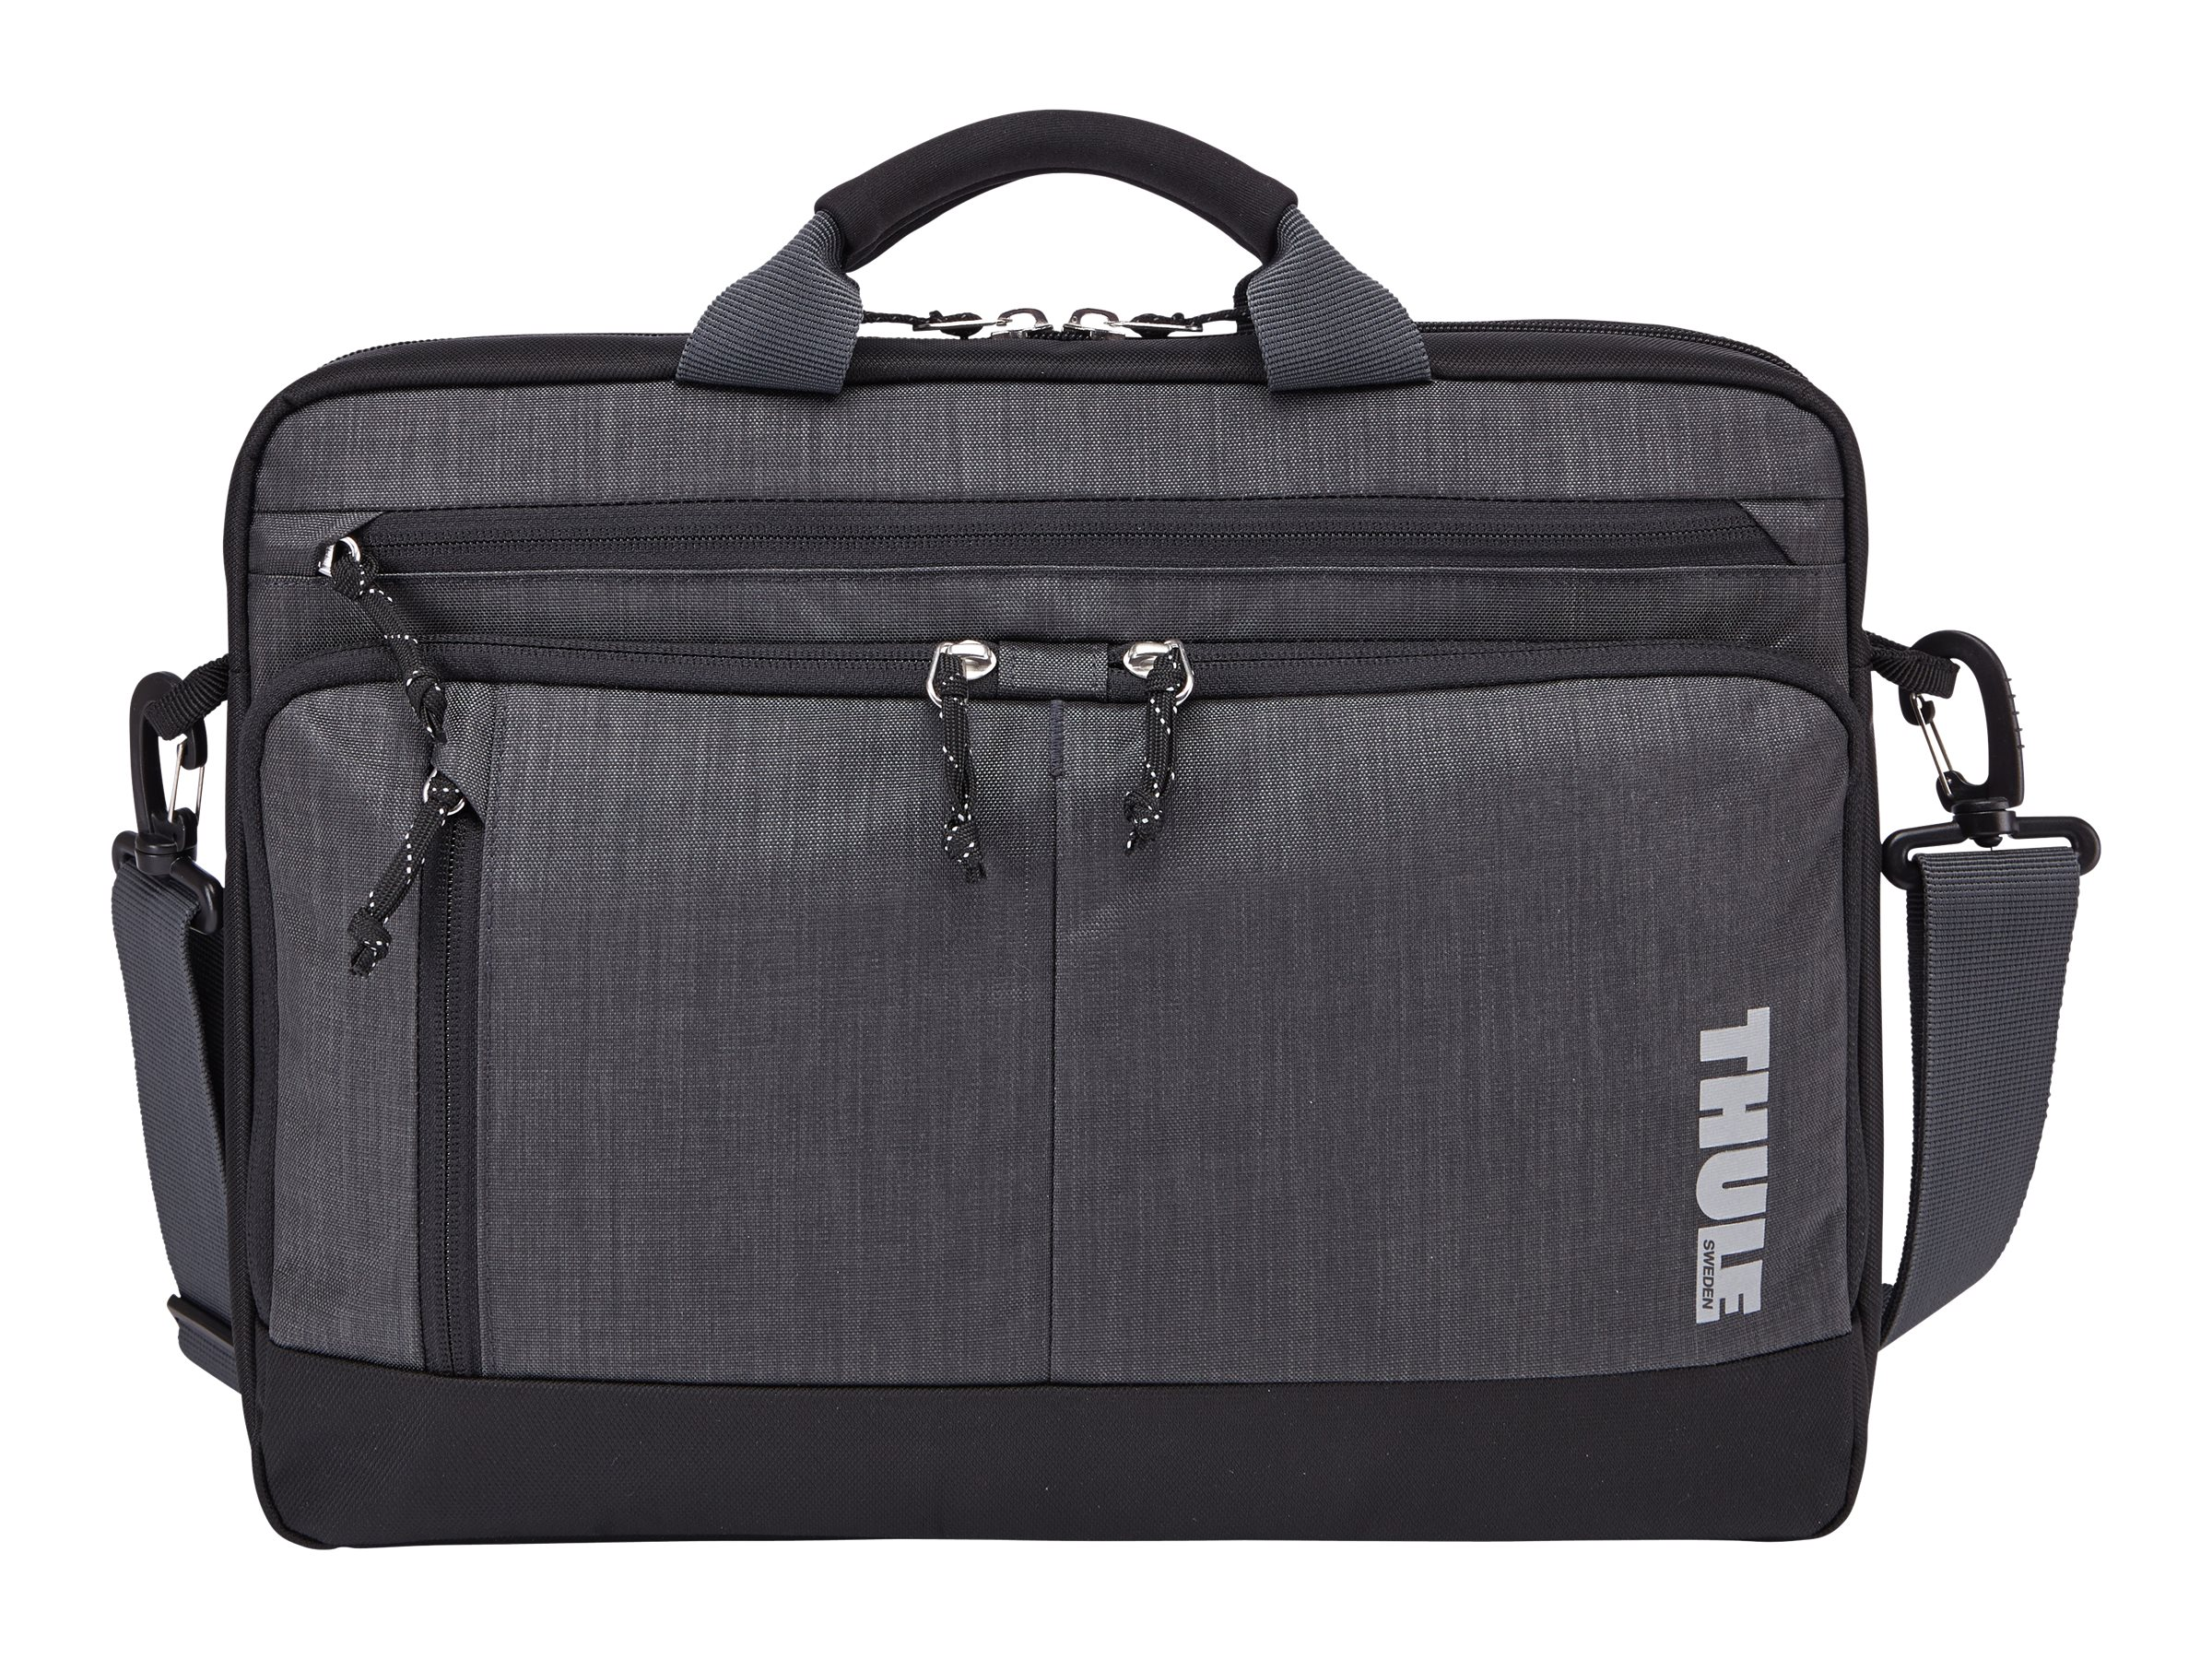 Case Logic Thule 15 Stravan Deluxe Attache for MacBook Pro MacBook Air, Gray, TSDA115GRAY, 23306176, Carrying Cases - Notebook